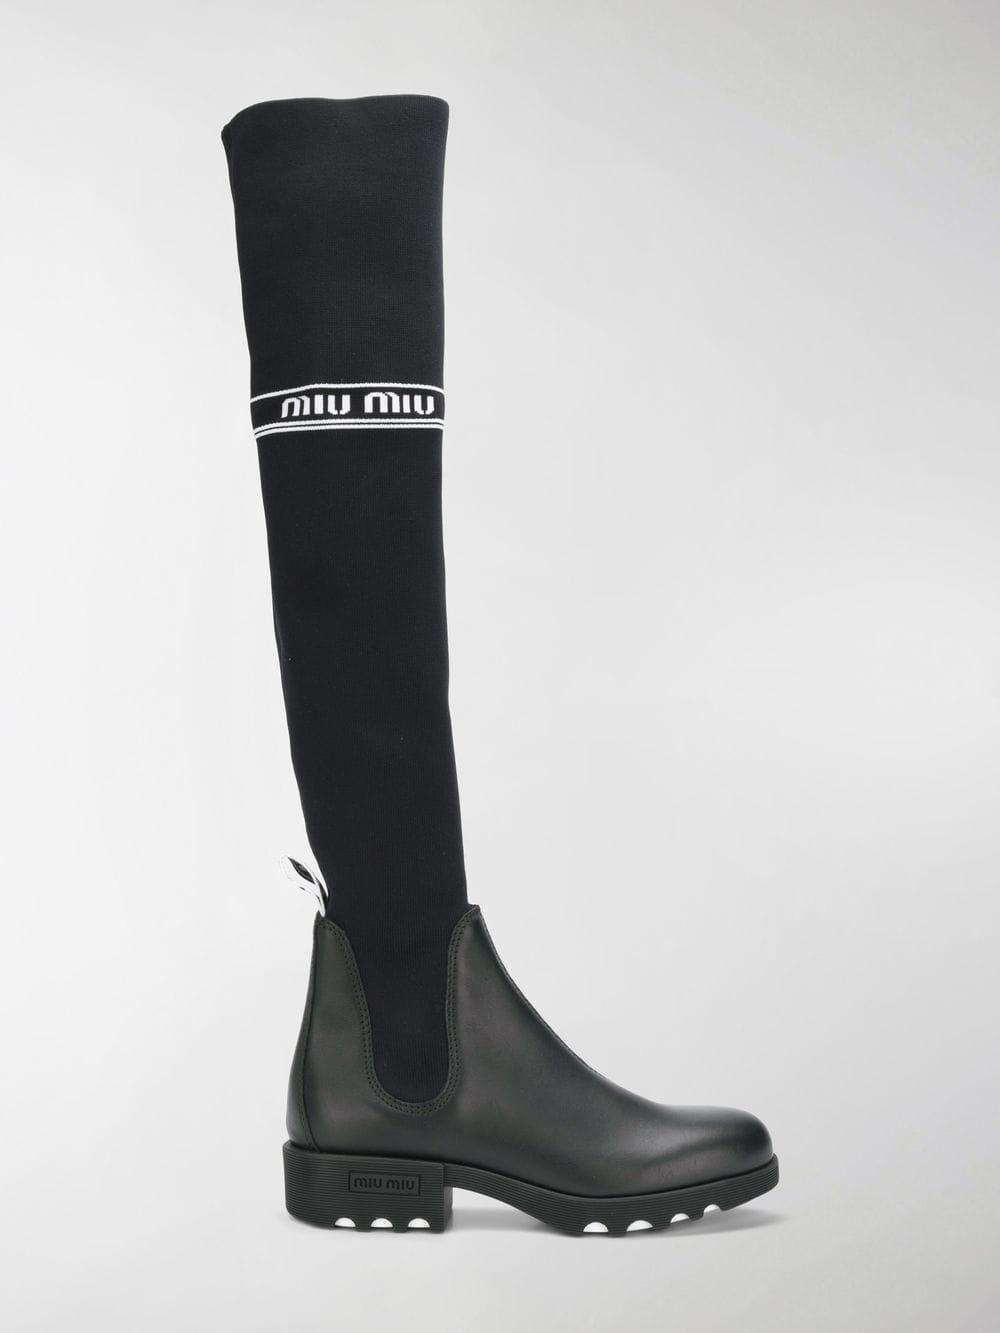 0d1364d97408 Miu Miu Leather Over-the-knee Boots in Black - Lyst